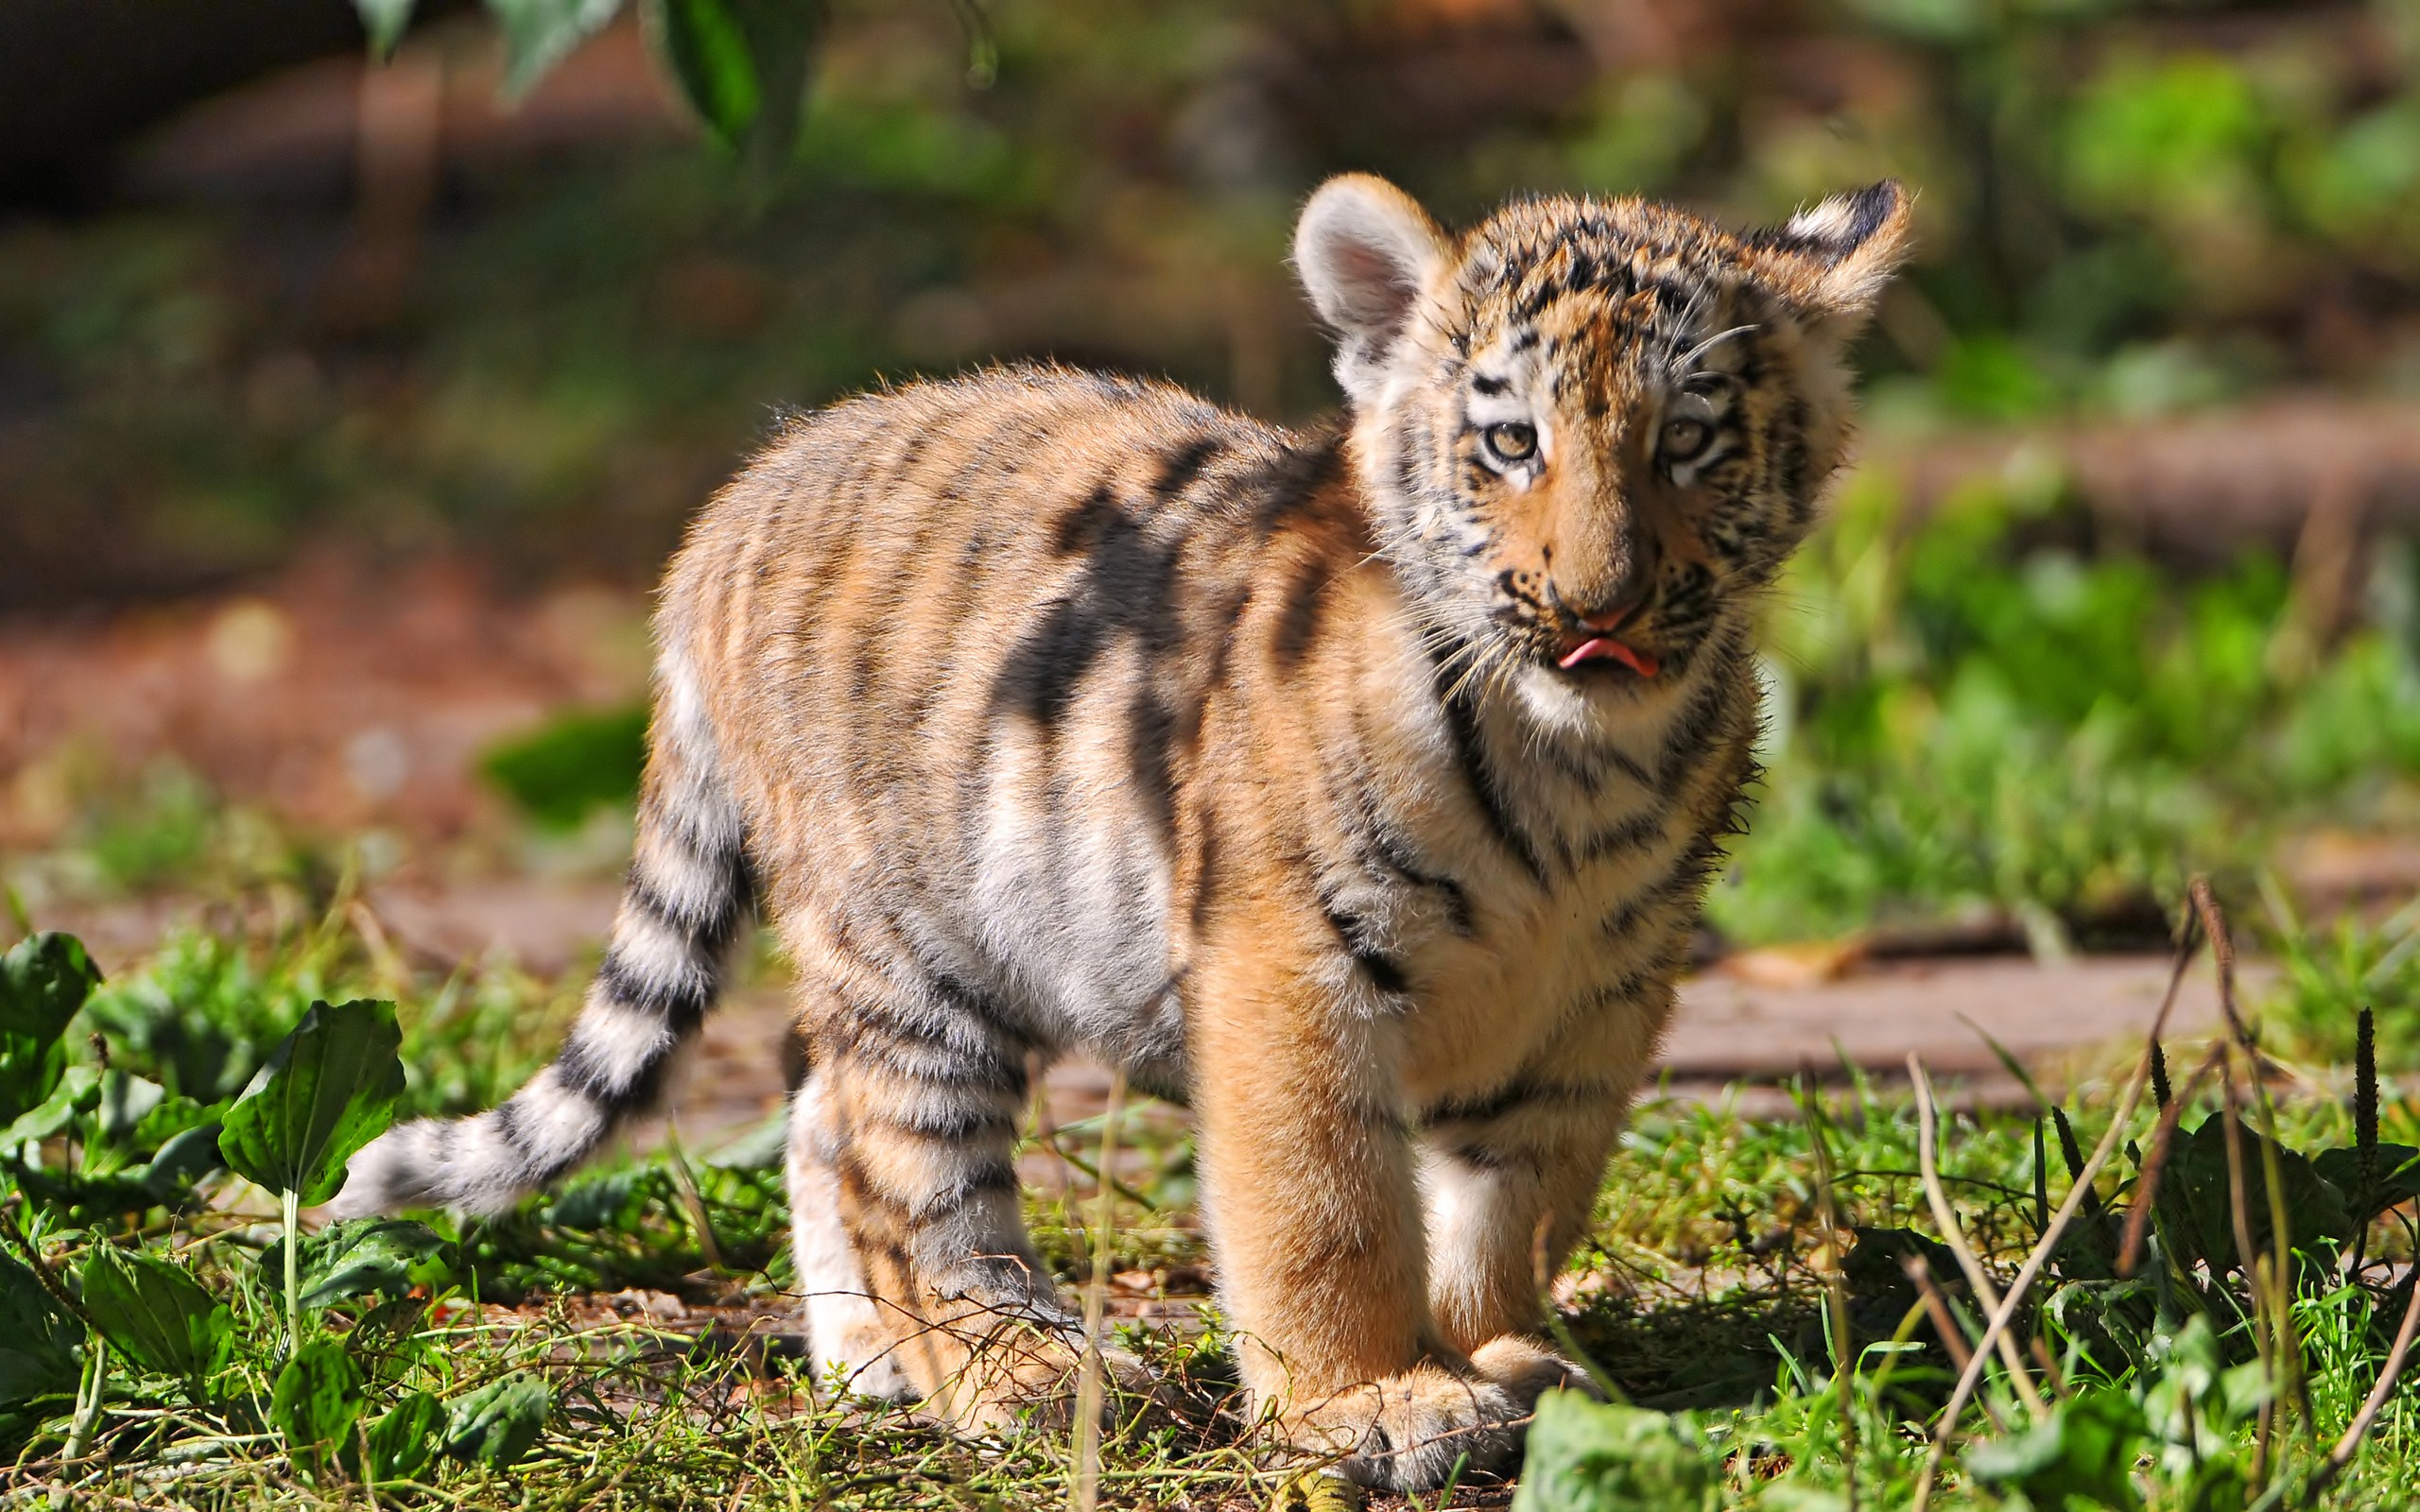 baby tiger wallpaper background hd 60127